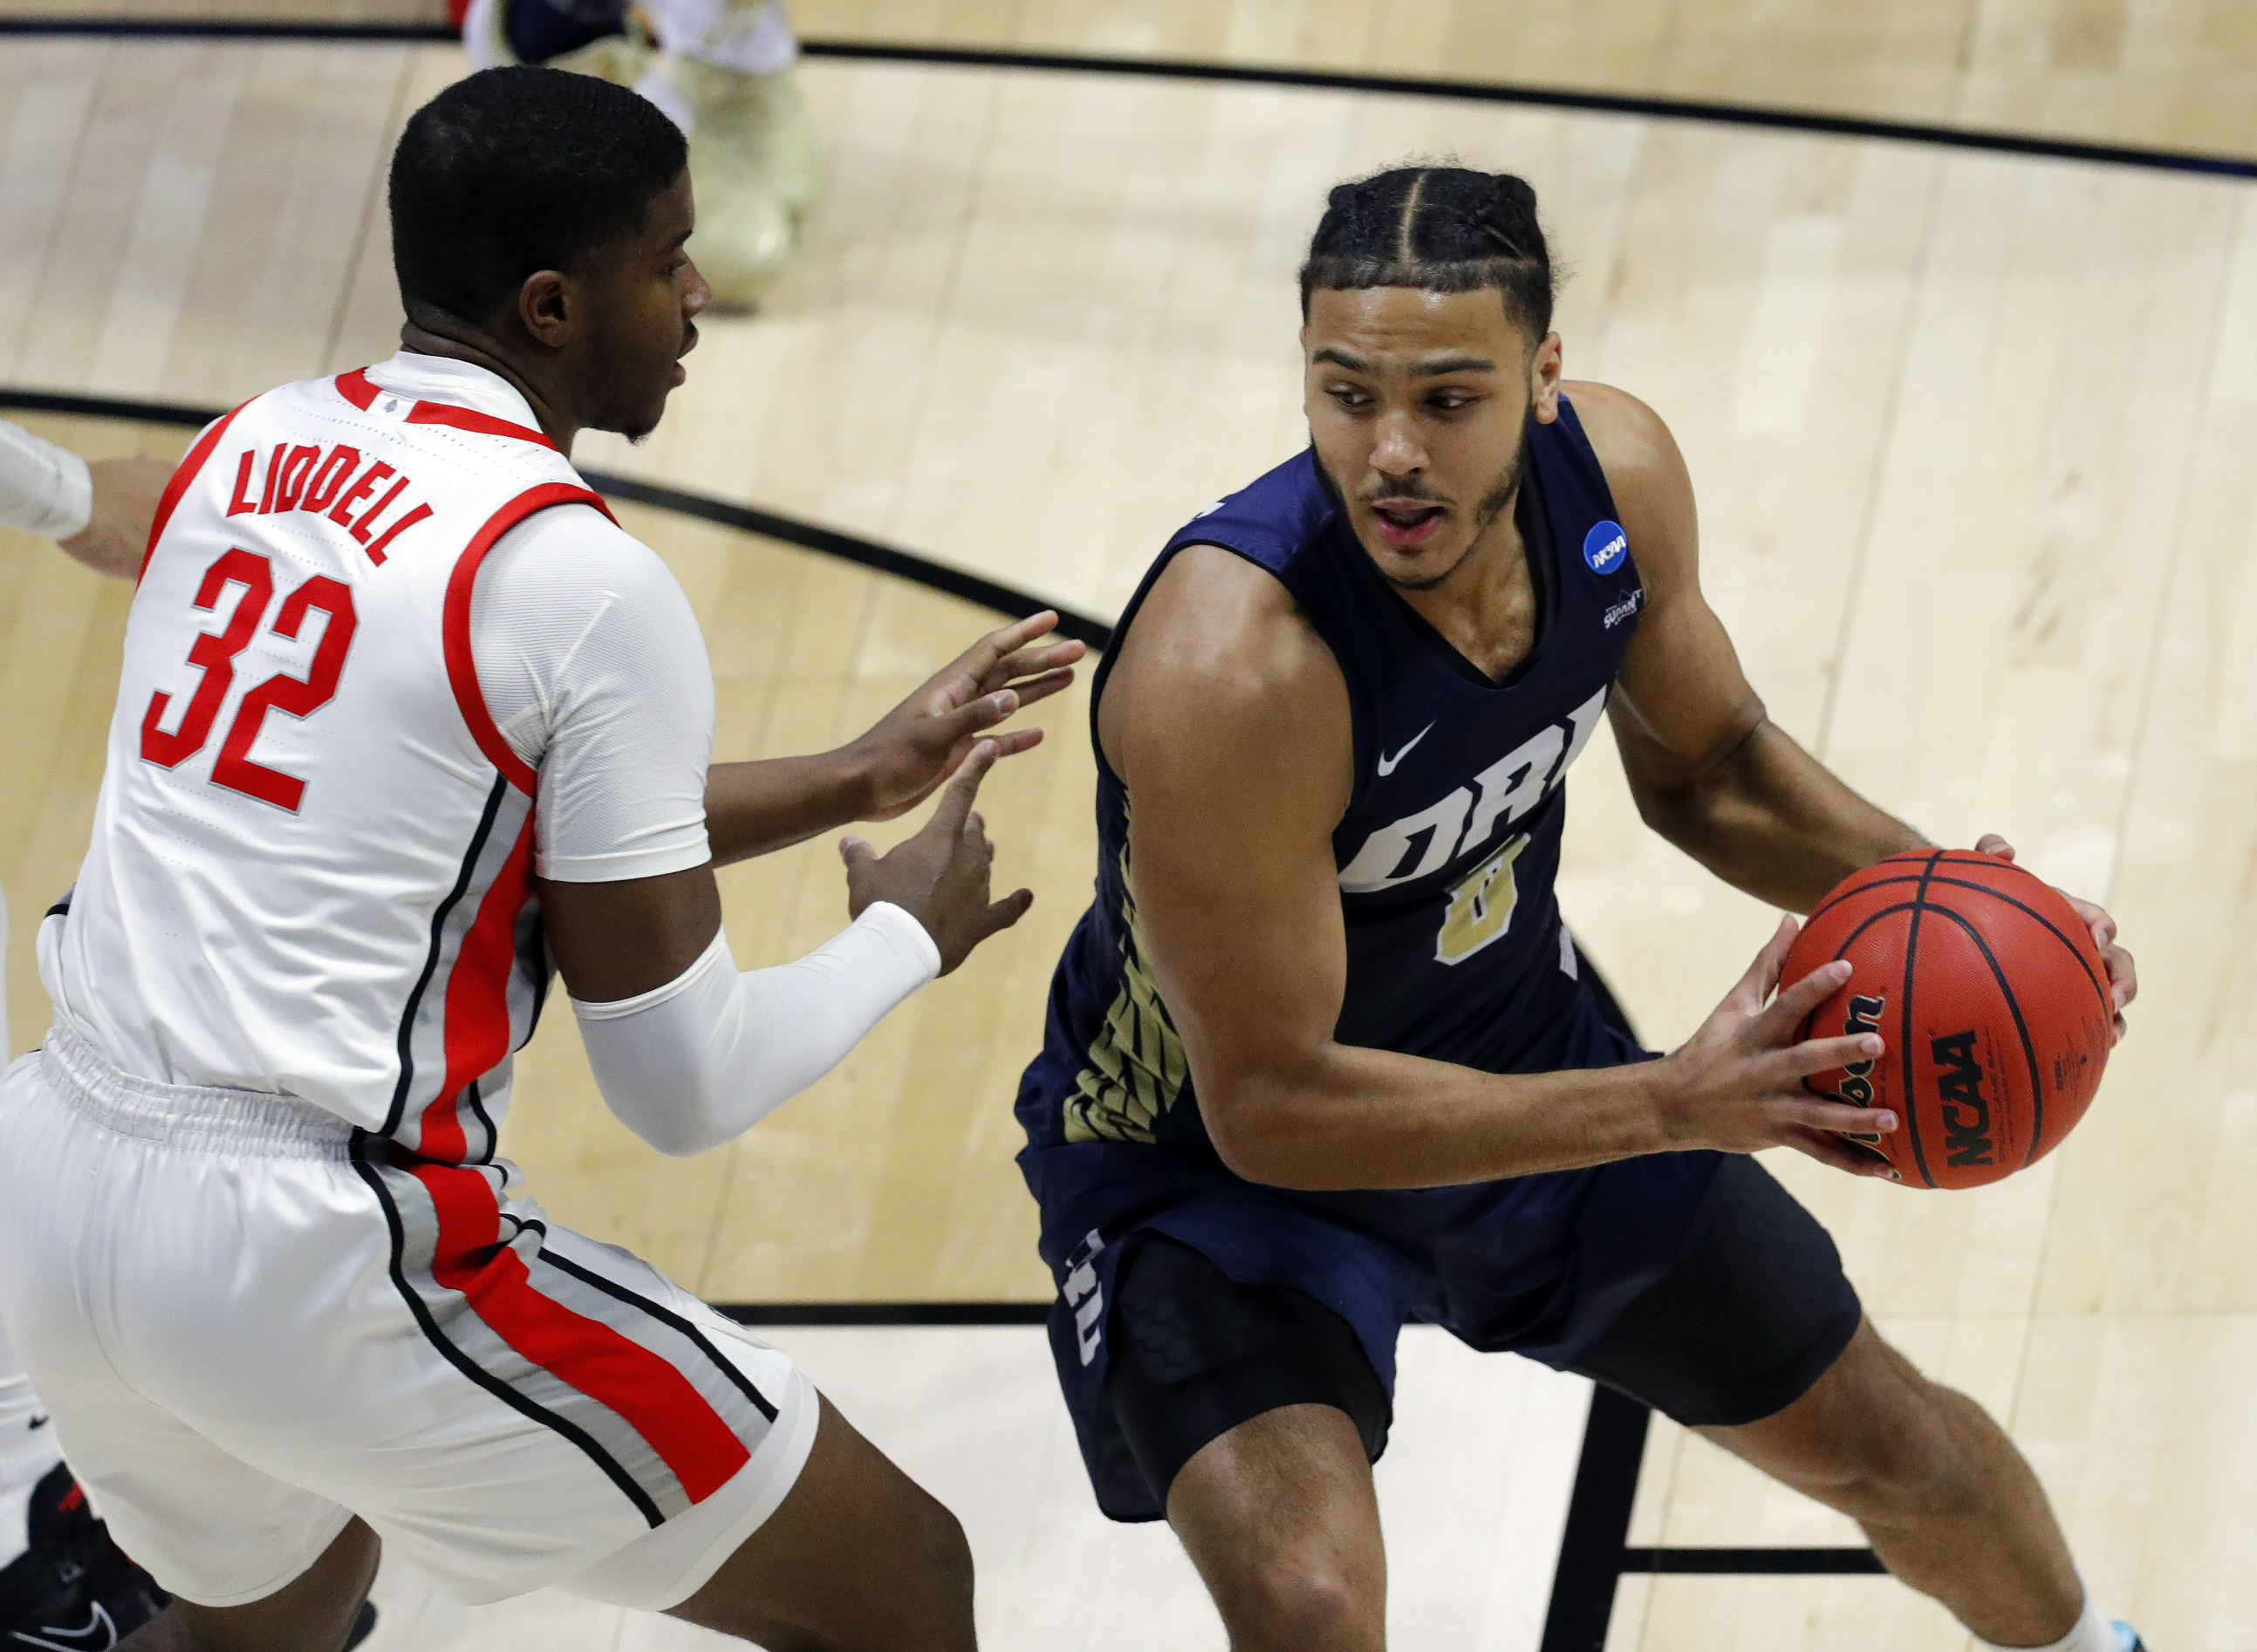 Oral Roberts continues to stun at March Madness